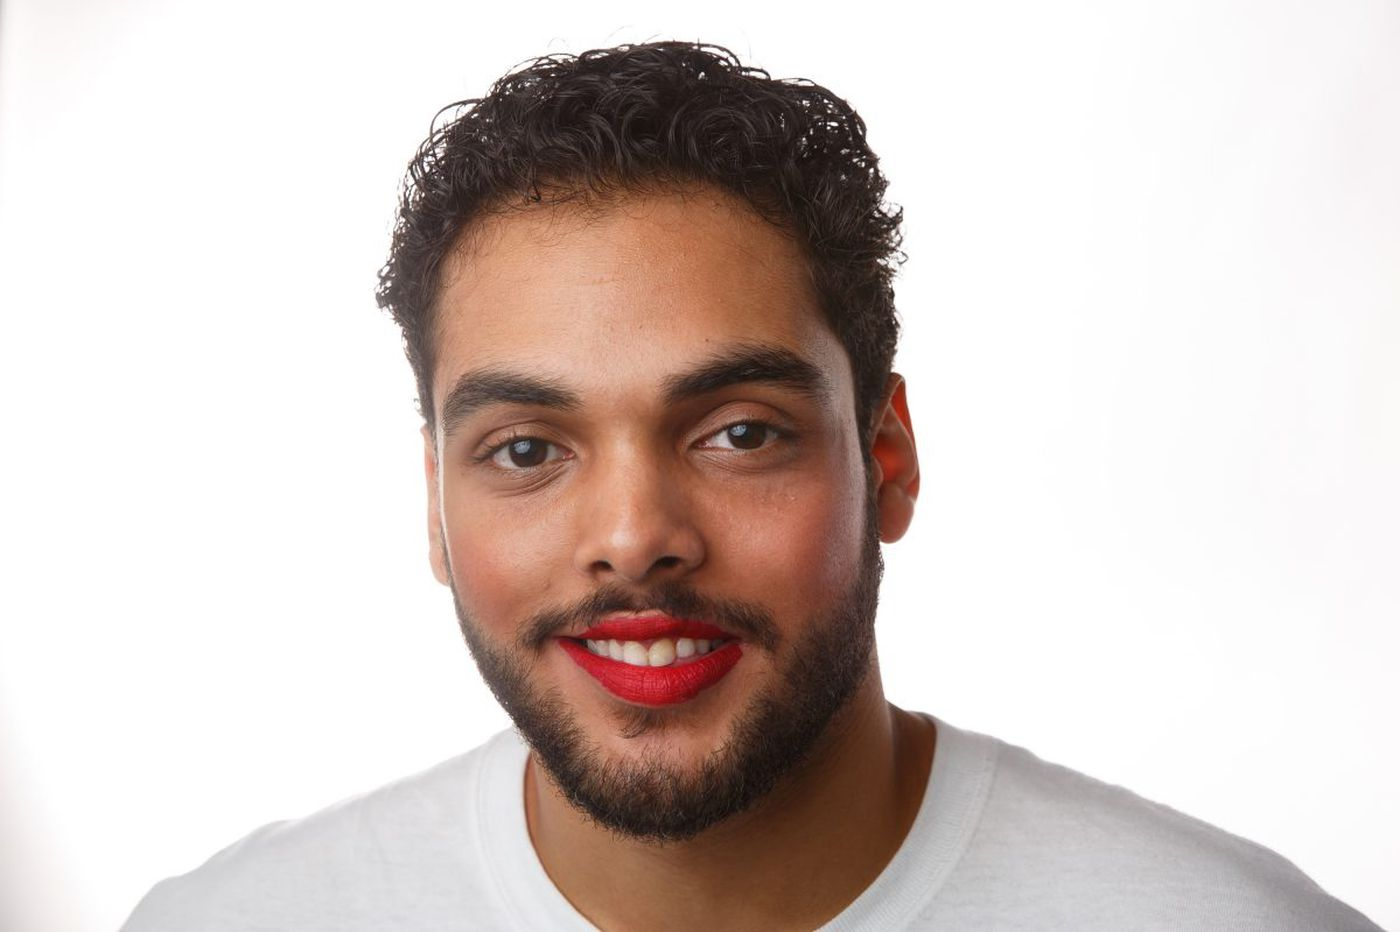 Yes, he's wearing a red lip, and he's fine with it